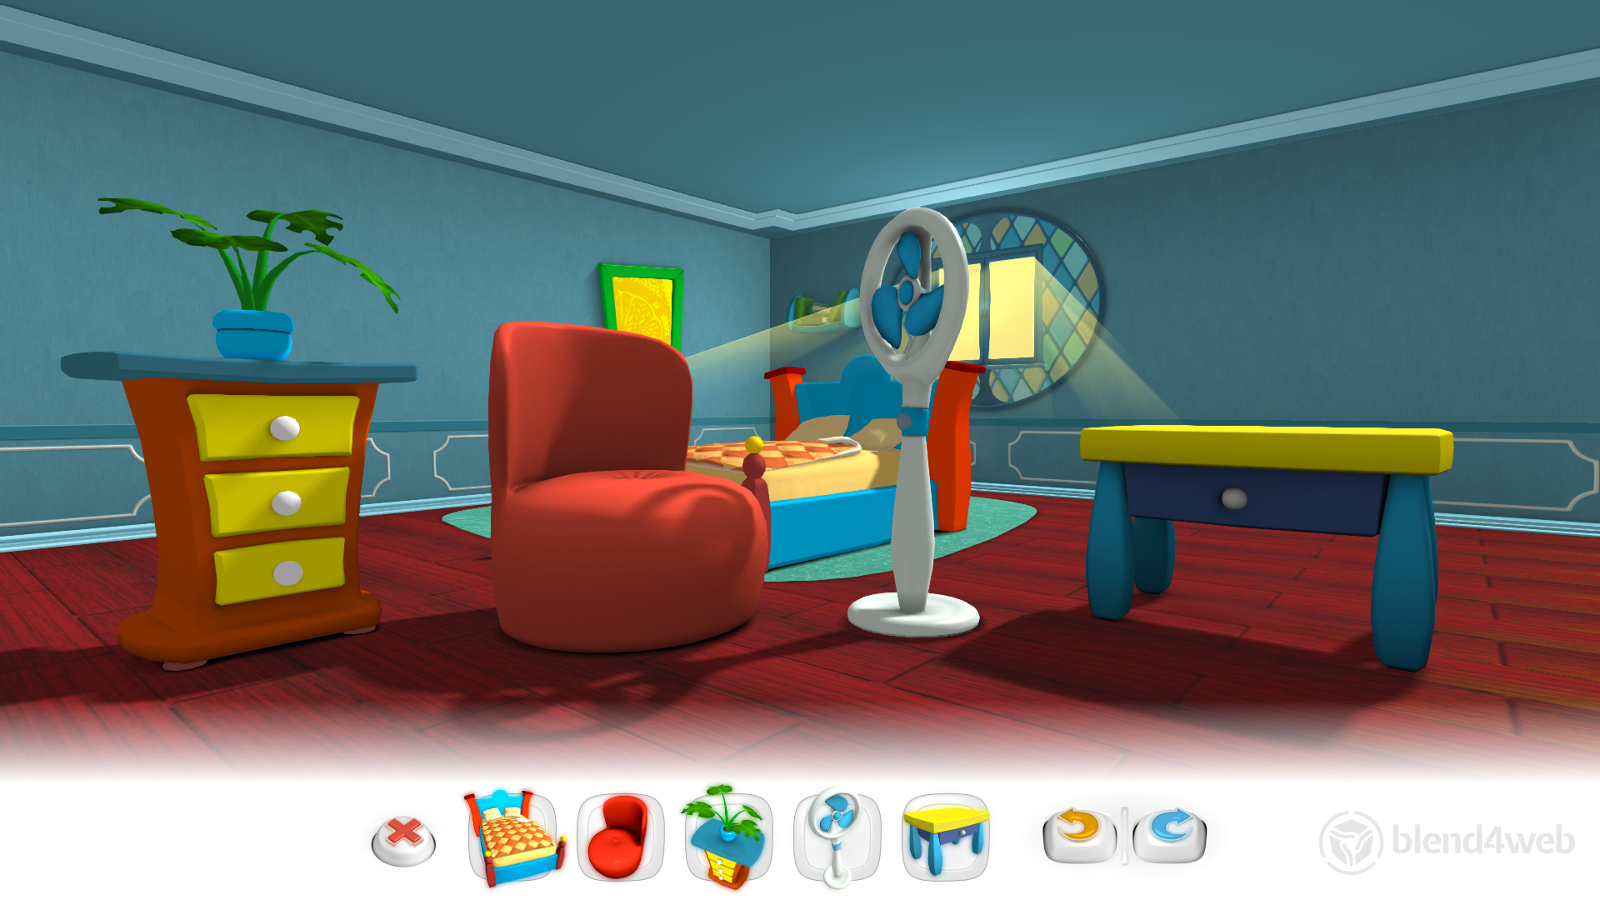 Furnishing a Room preview